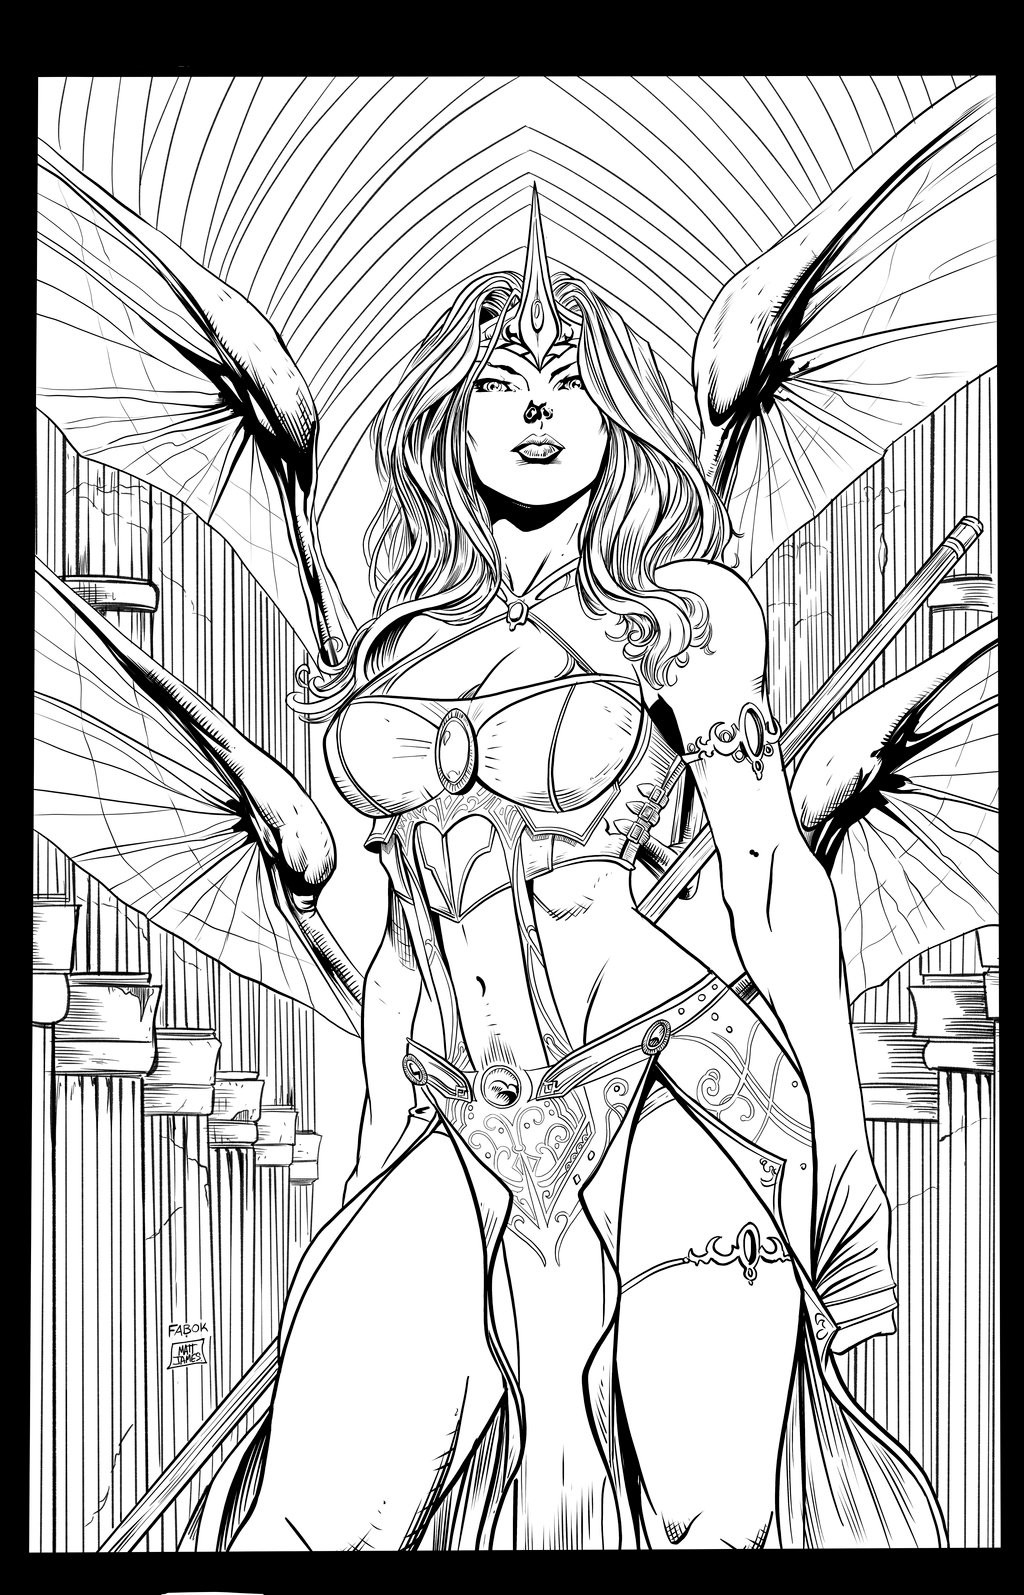 Matt james jason fabok soulfire 2 cover wondercon11 by mattjamescomicarts da0l3vr